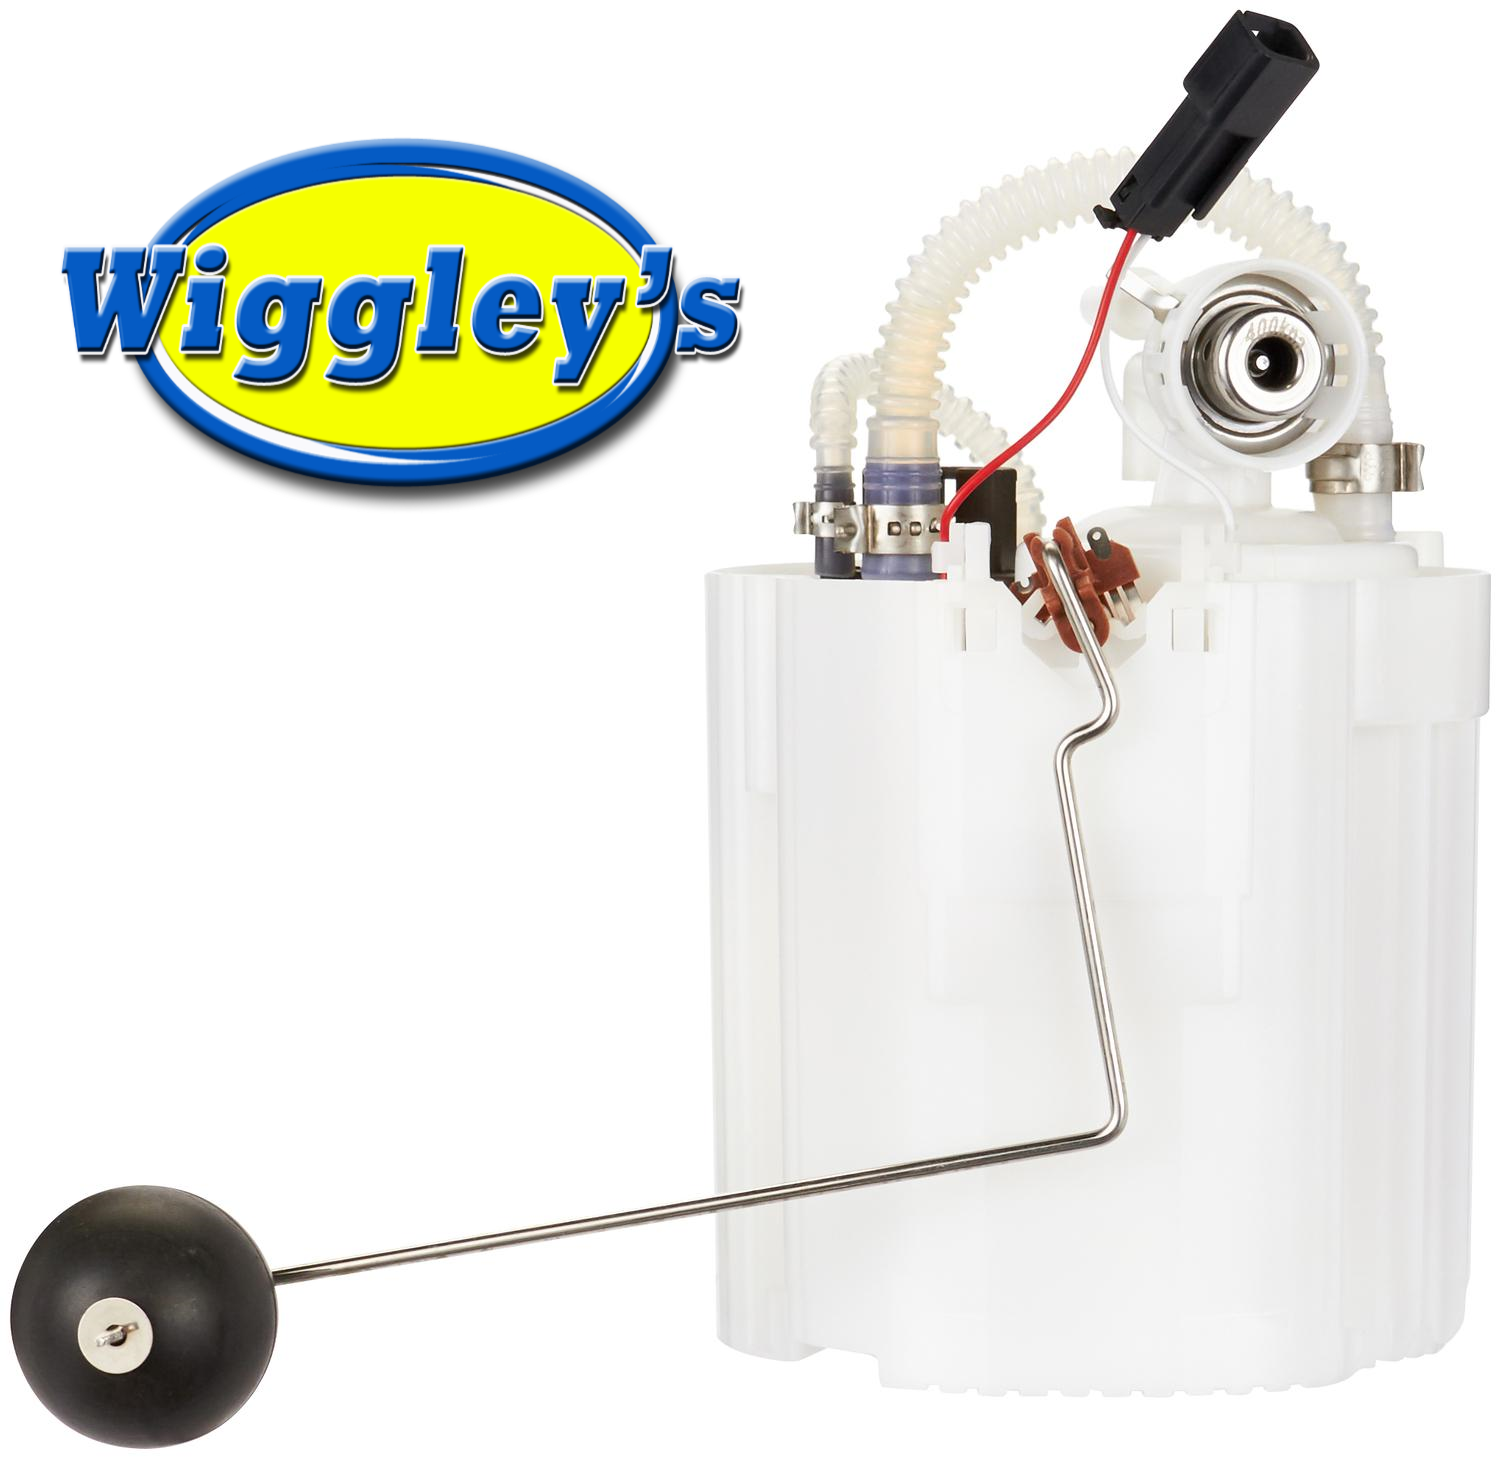 FUEL PUMP MODULE ASSEMBLY 150345 FOR 07-14 VOLVO S80 V70 XC60 XC70 3.0L 3.2L